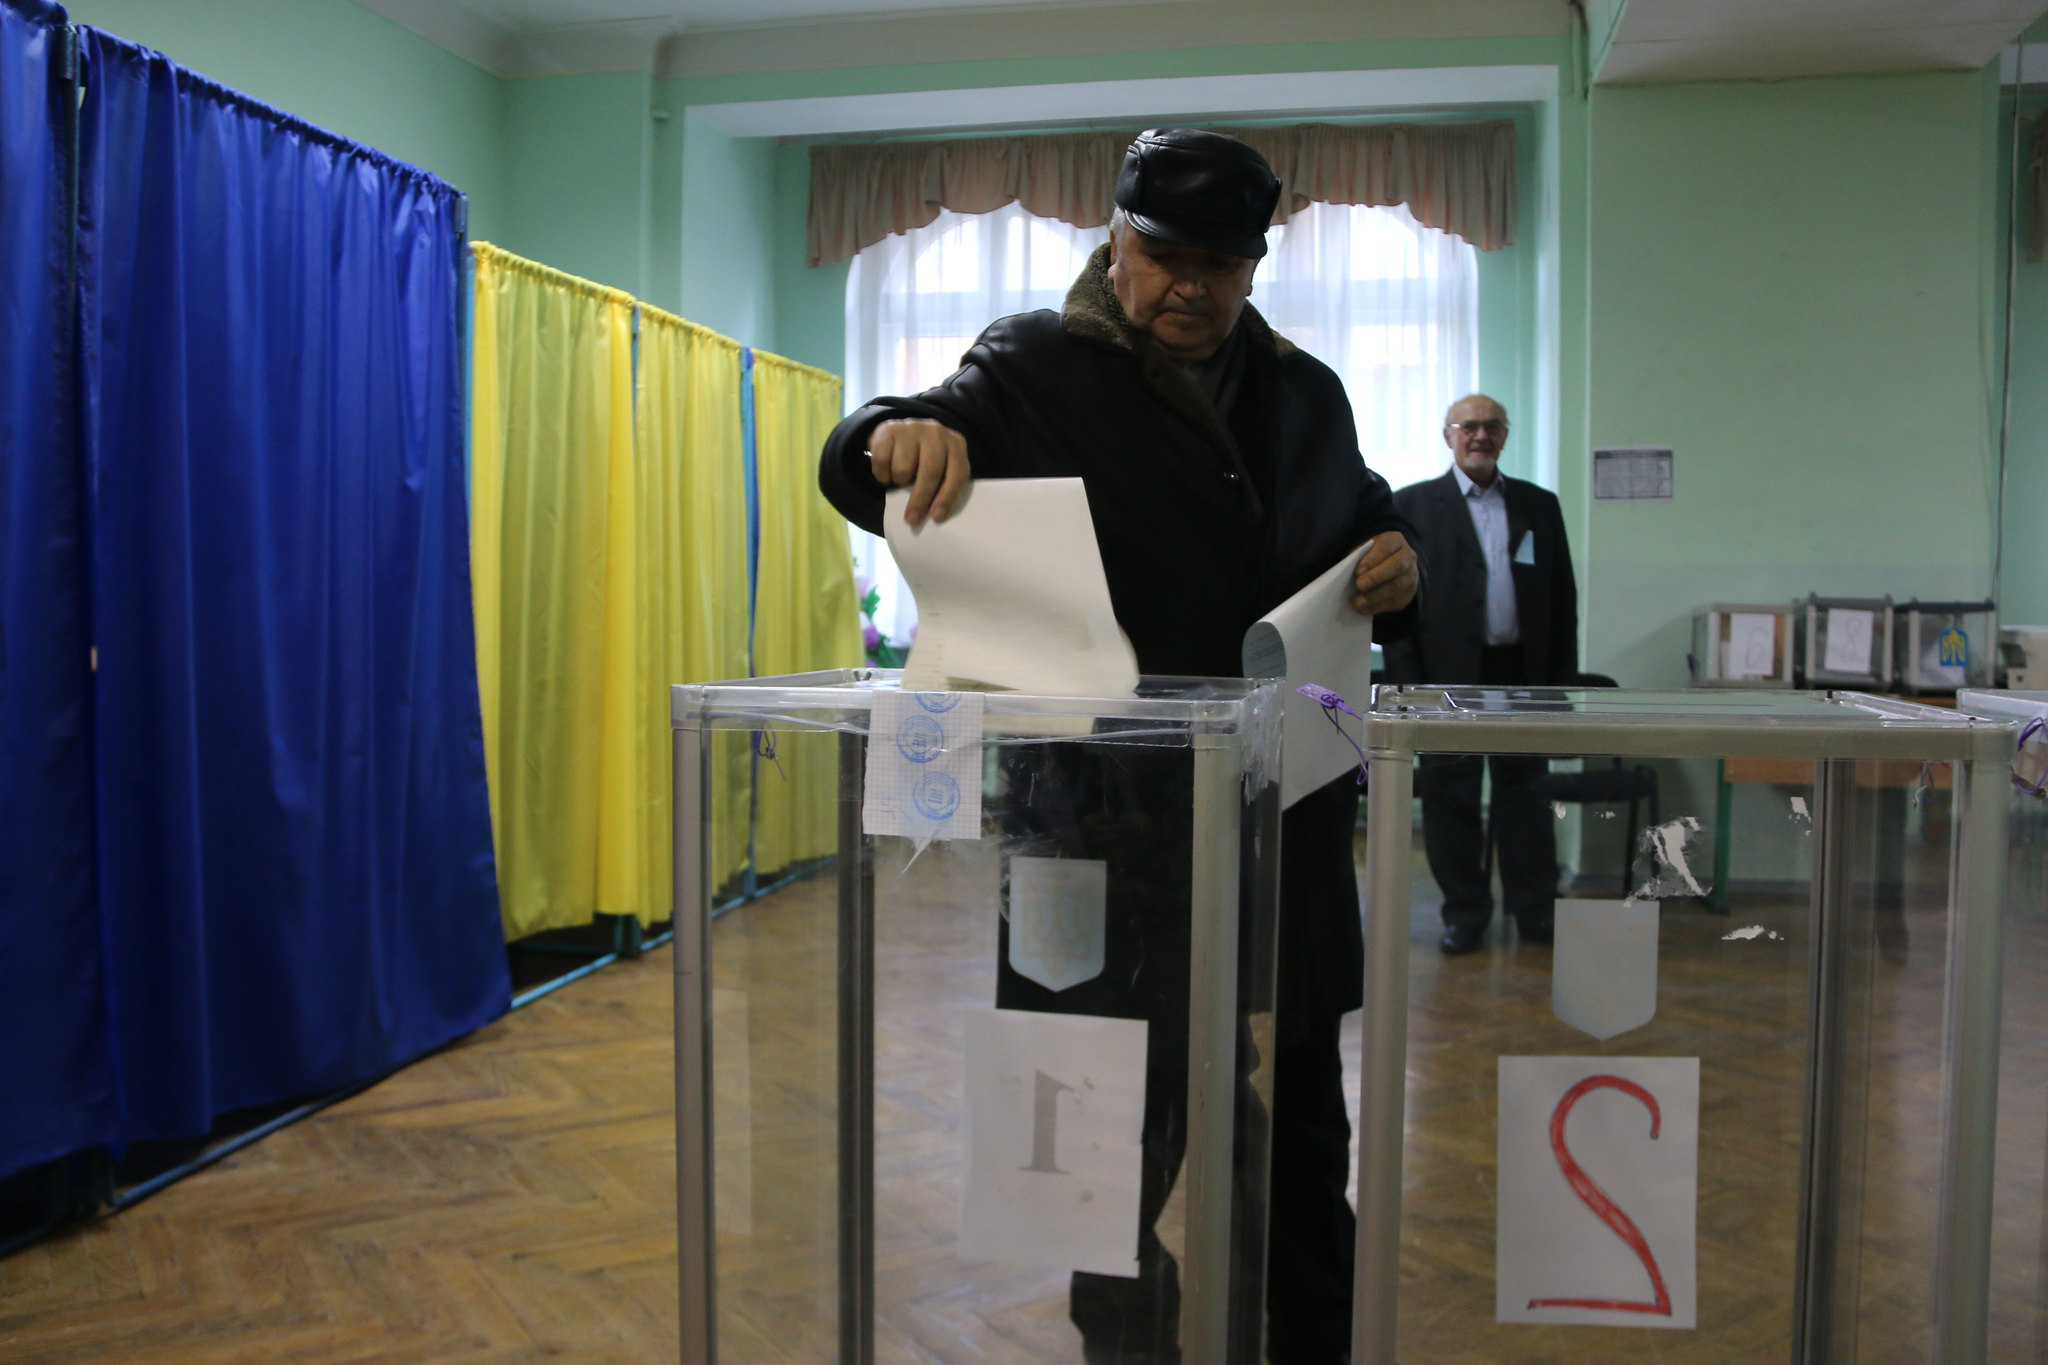 Ten reflections on Ukraine's parliamentary vote - New Eastern Europe - A bimonthly news magazine dedicated to Central and Eastern European affairs